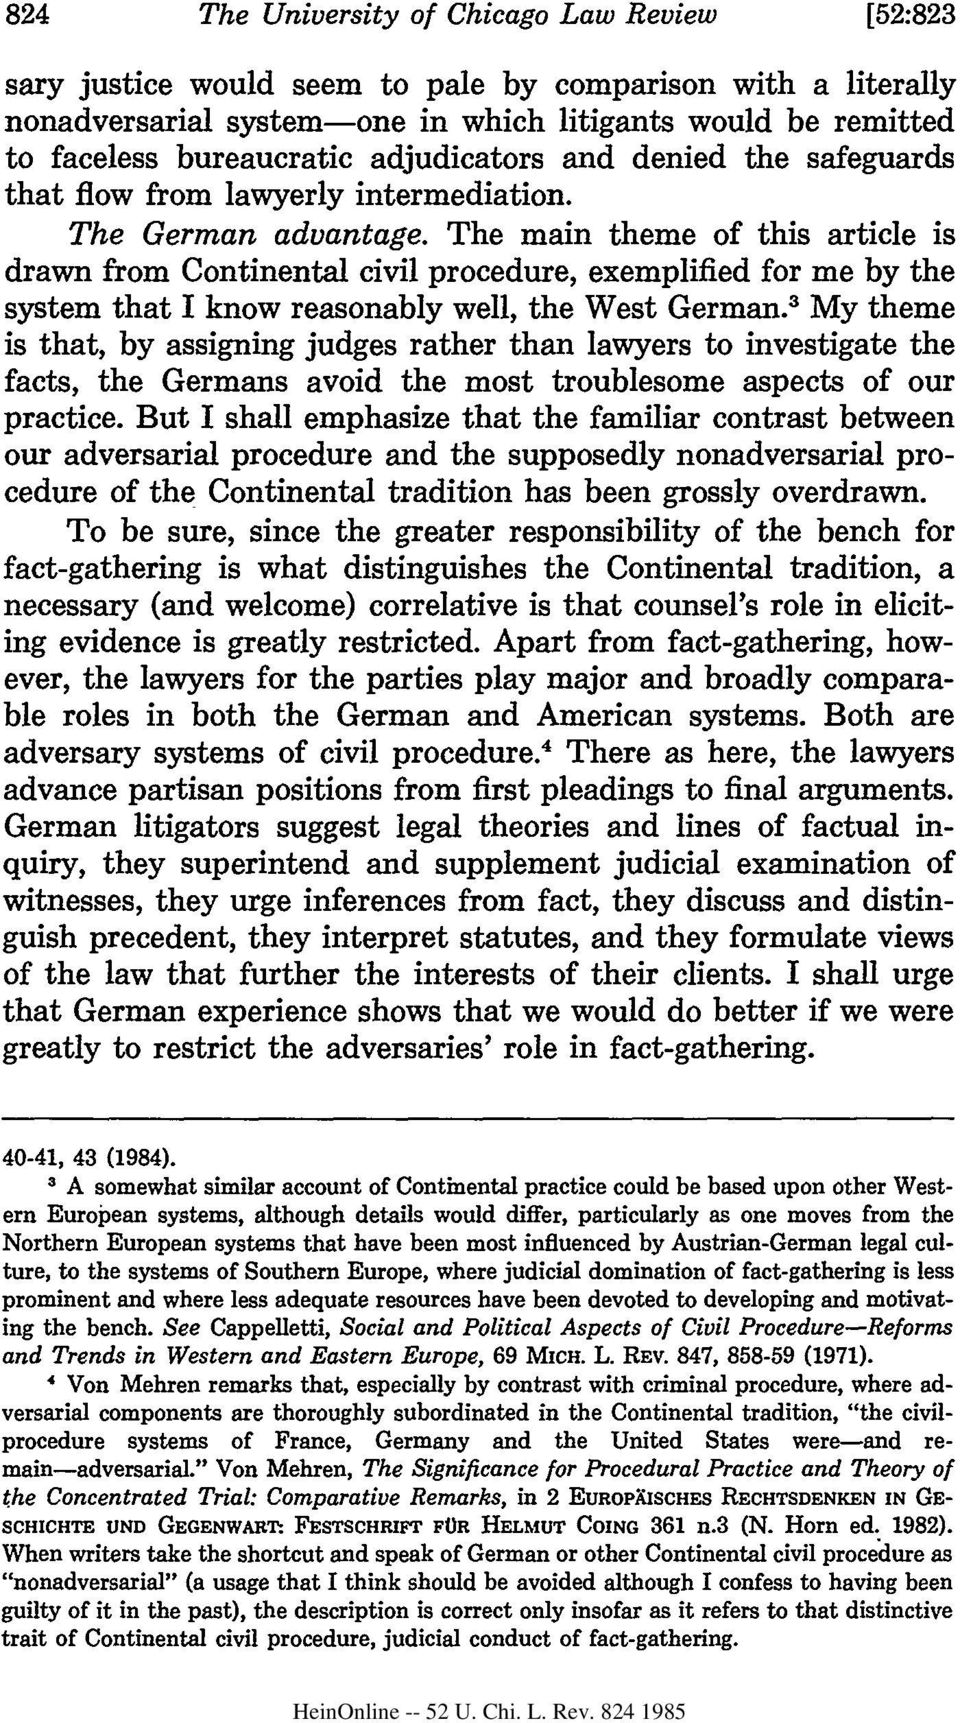 The main theme of this article is drawn from Continental civil procedure, exemplified for me by the system that I know reasonably well, the West German.